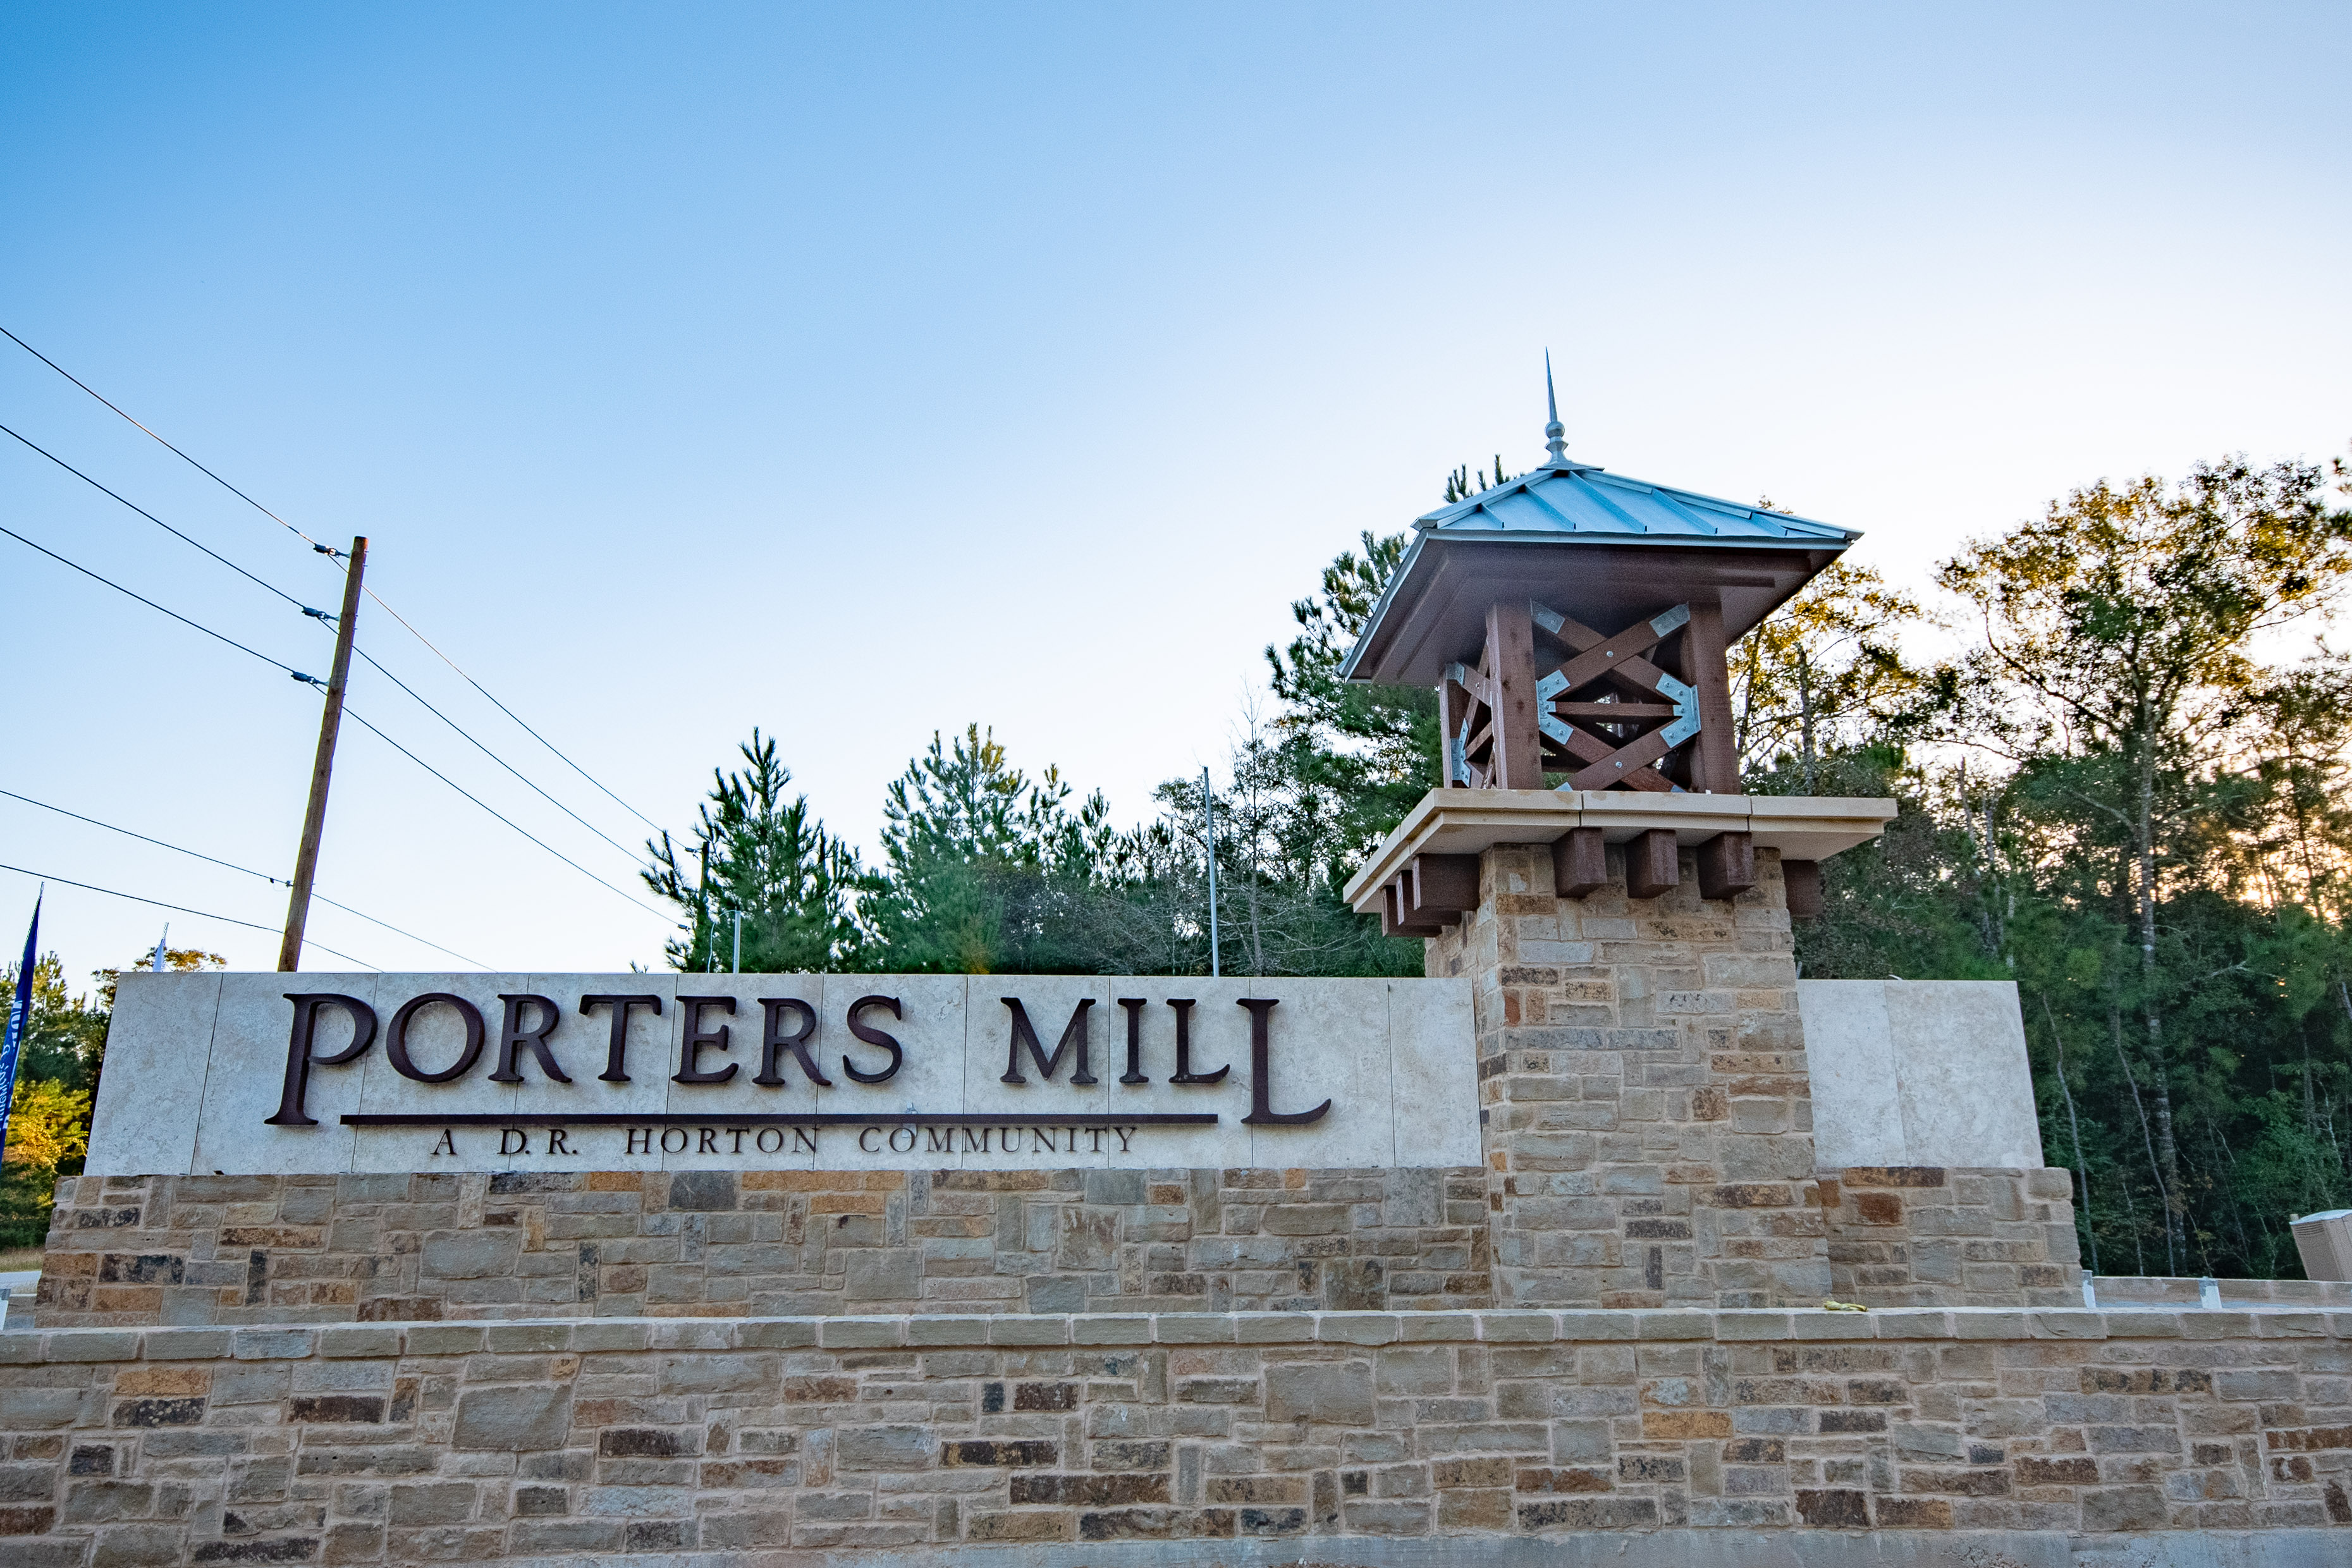 porters mill-monument1